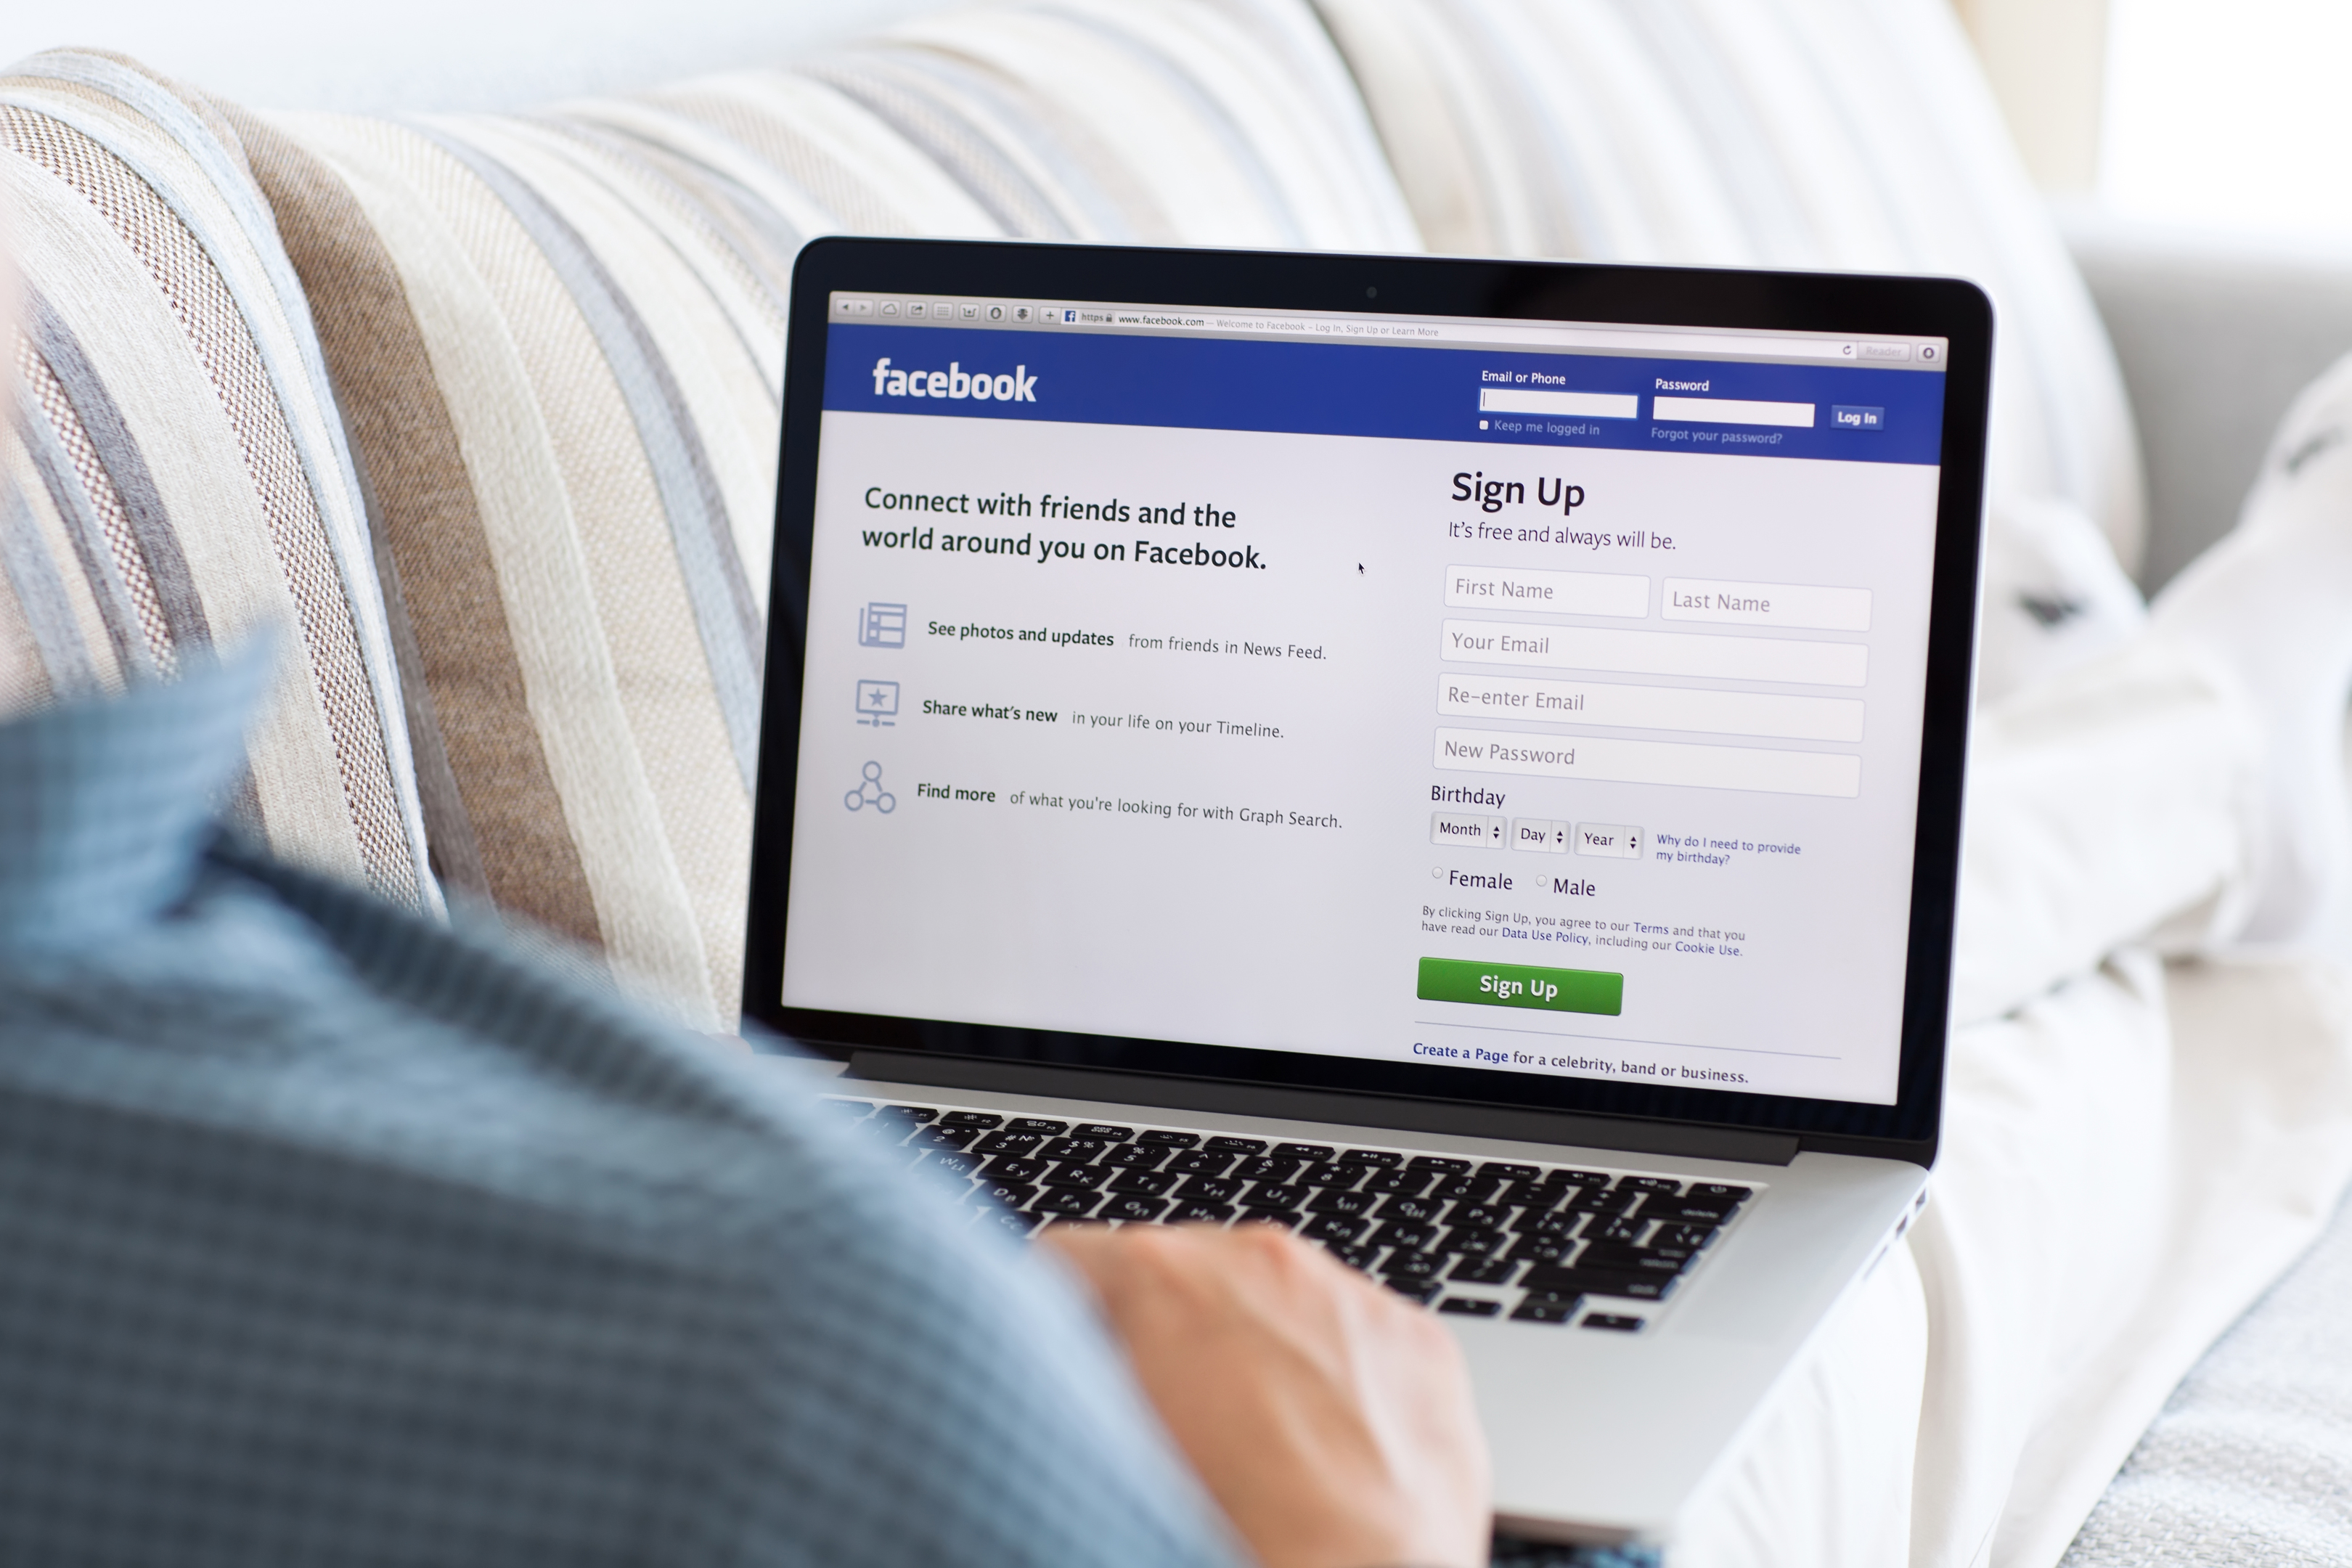 Facebook was the most popular social media platform among the over 65s (Getty Images/iStock)